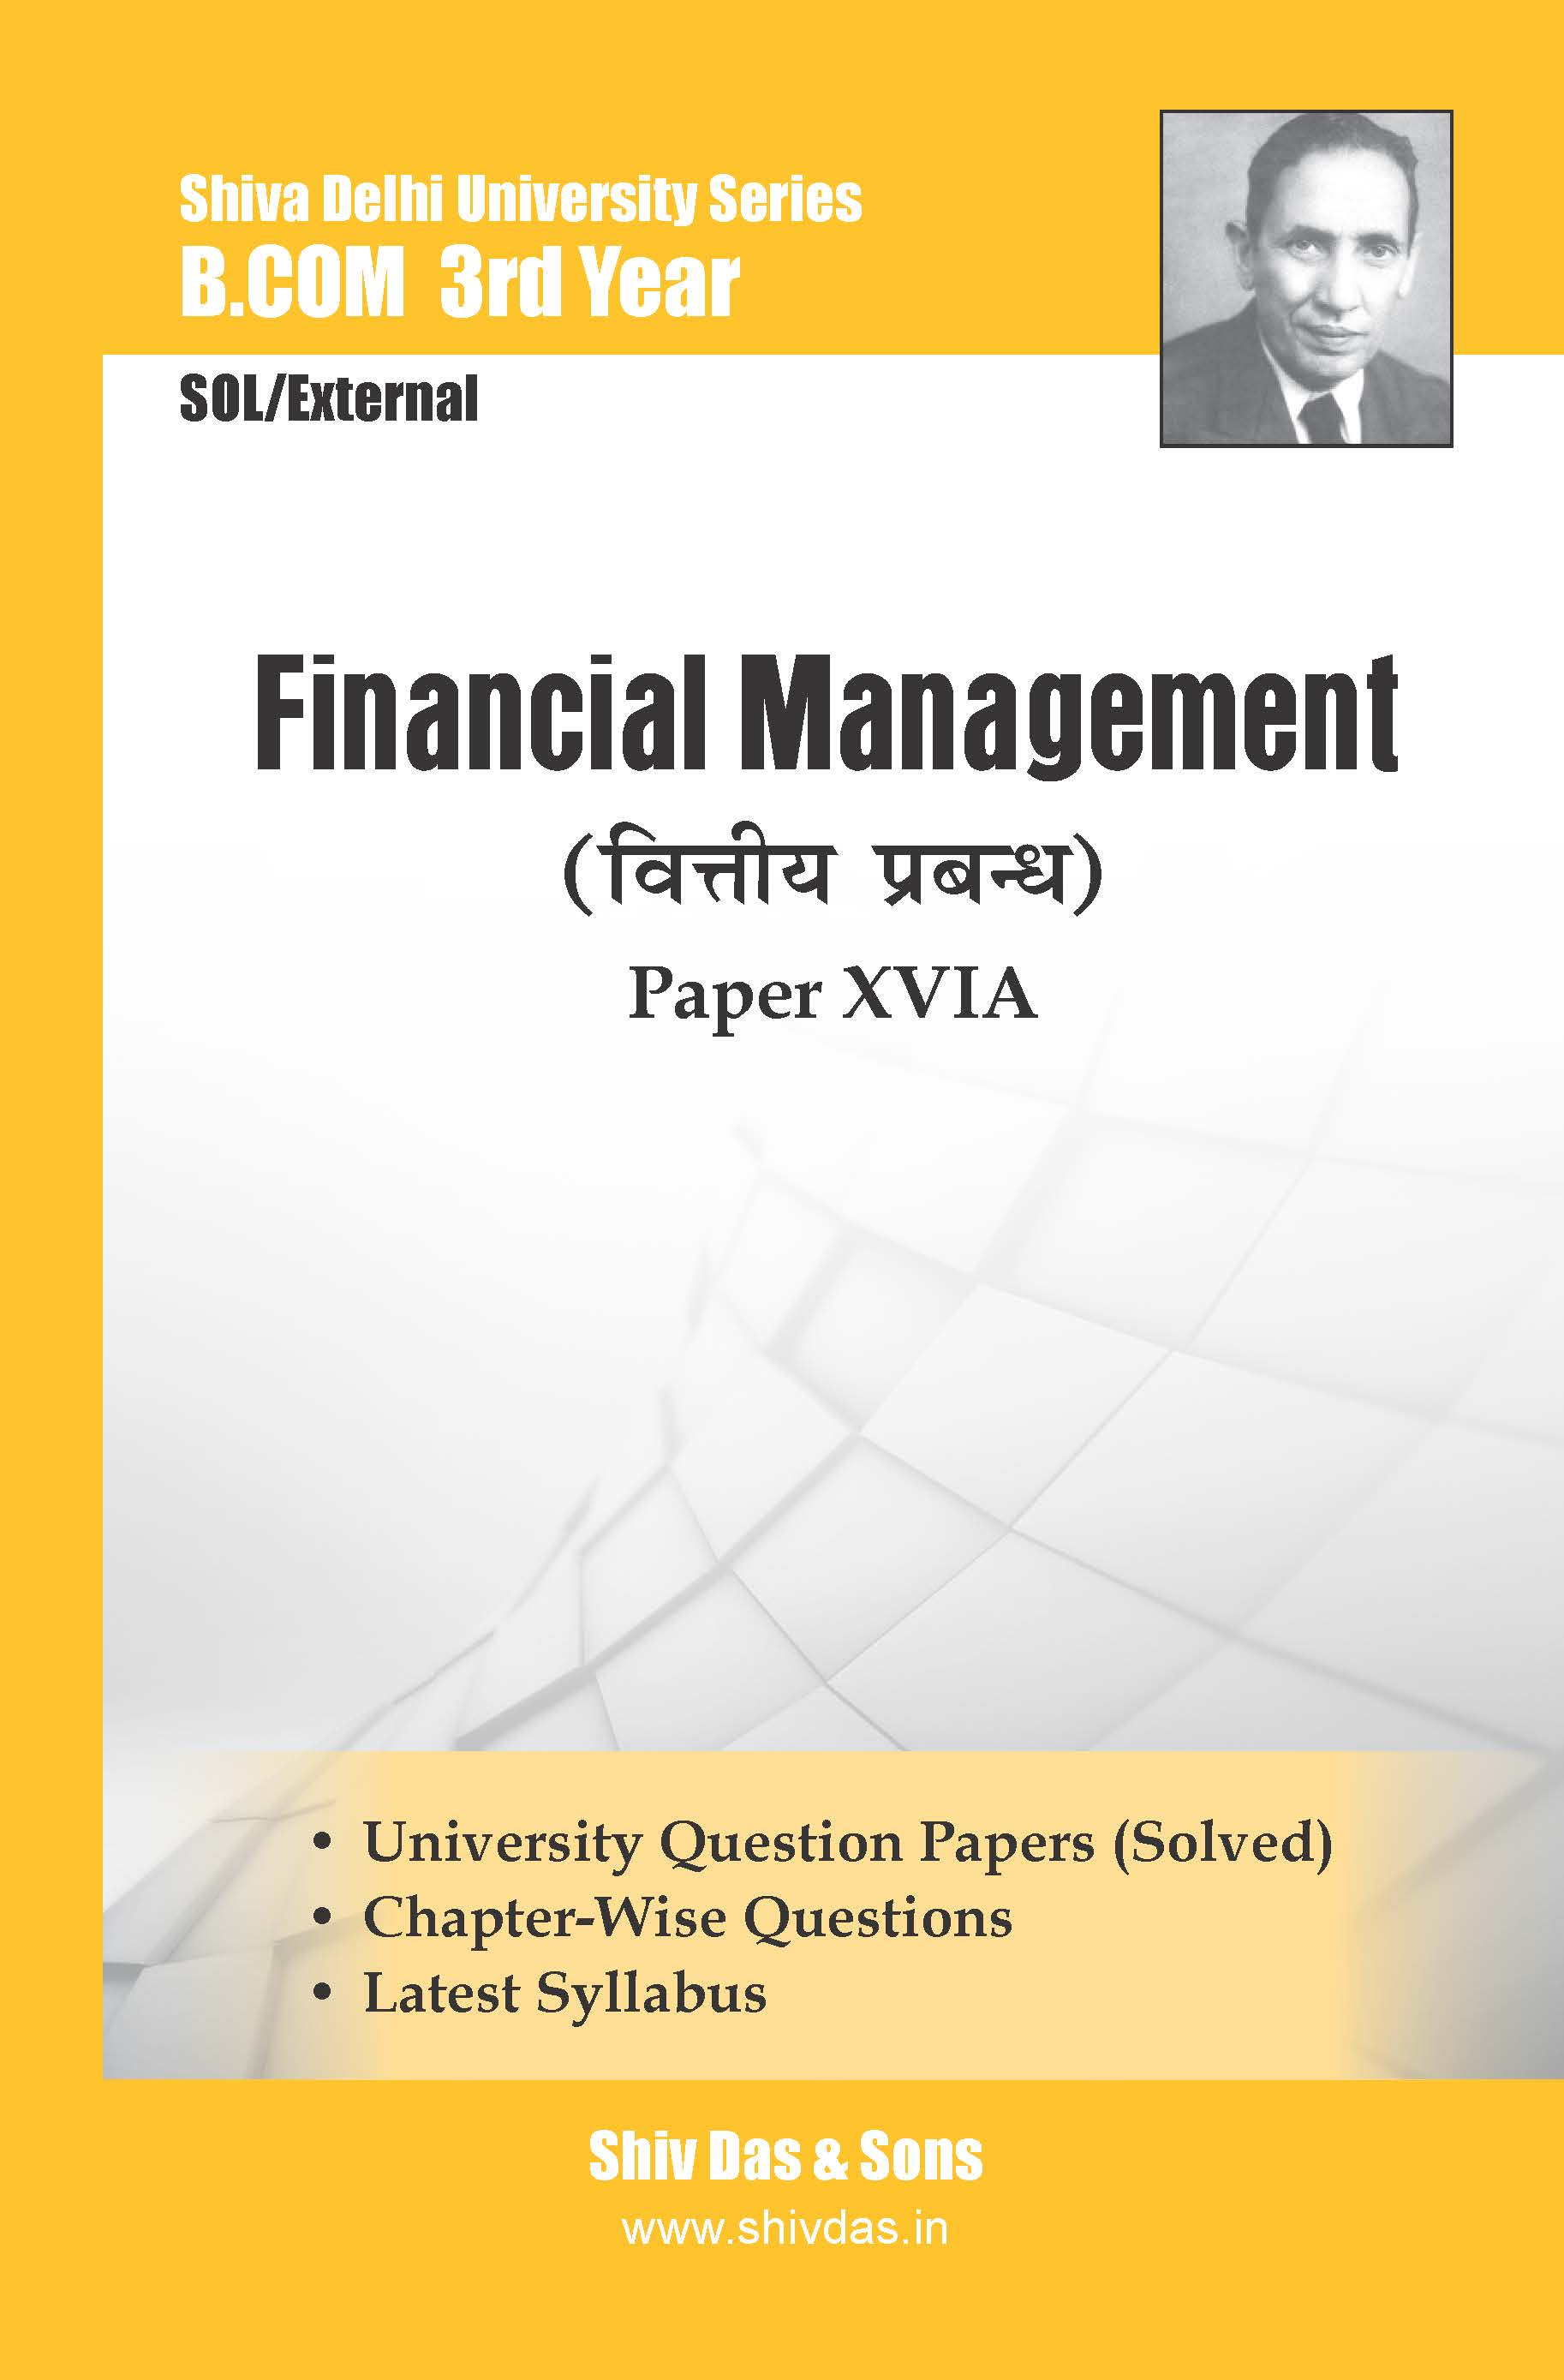 B.Com 3rd Year SOL/External Financial Management (Hindi Medium) Shiv Das Delhi University Series